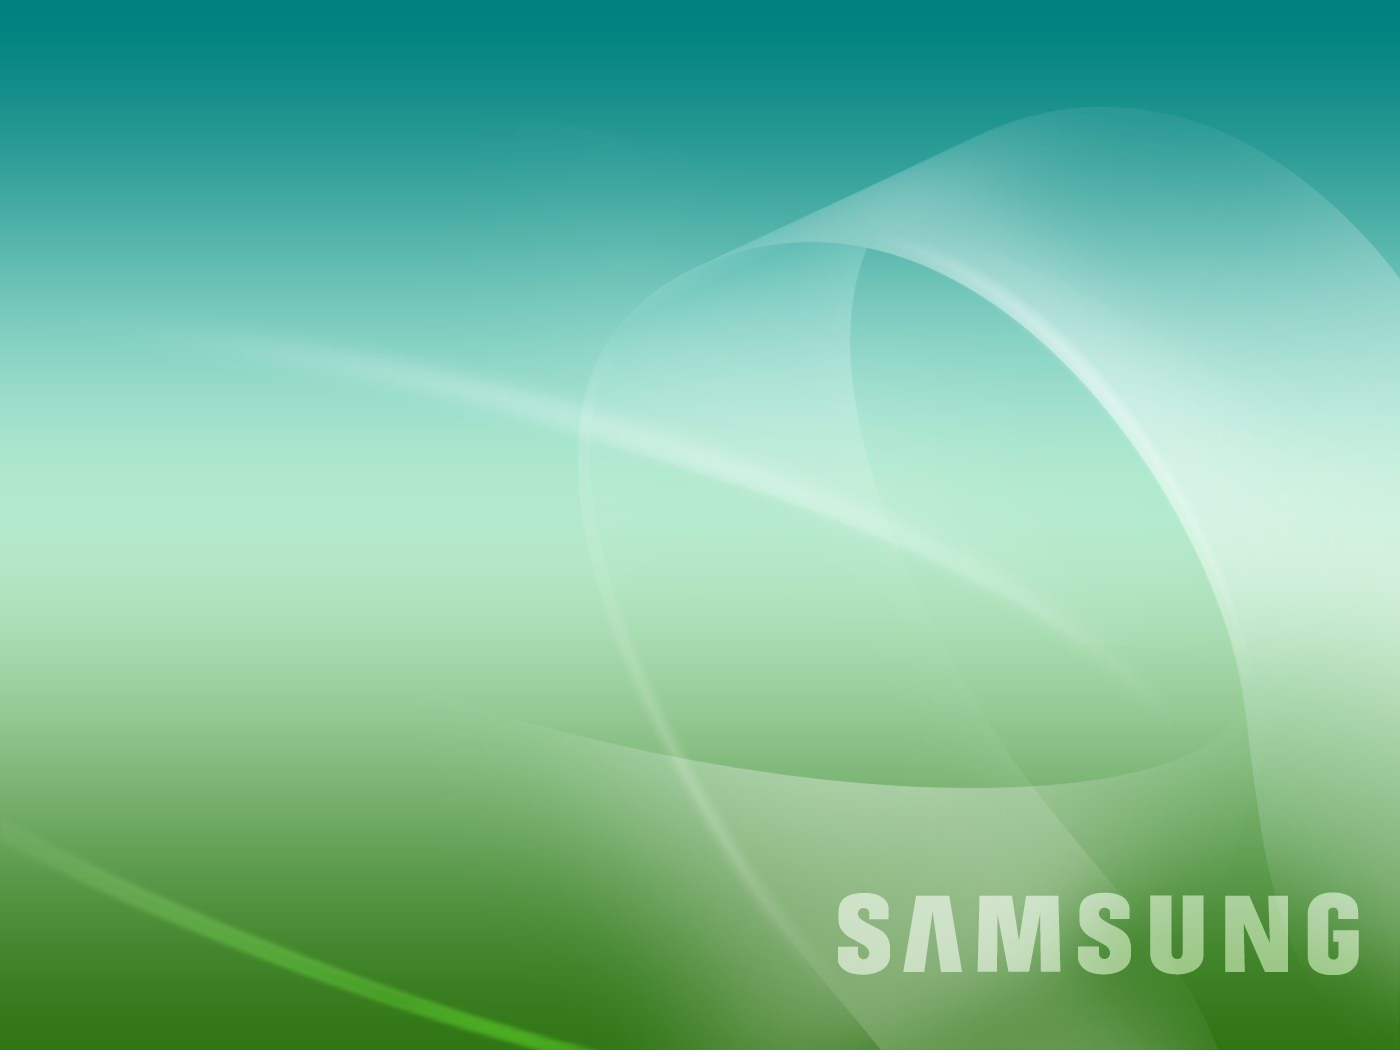 File Name Samsung Wallpapers Download 1400x1050